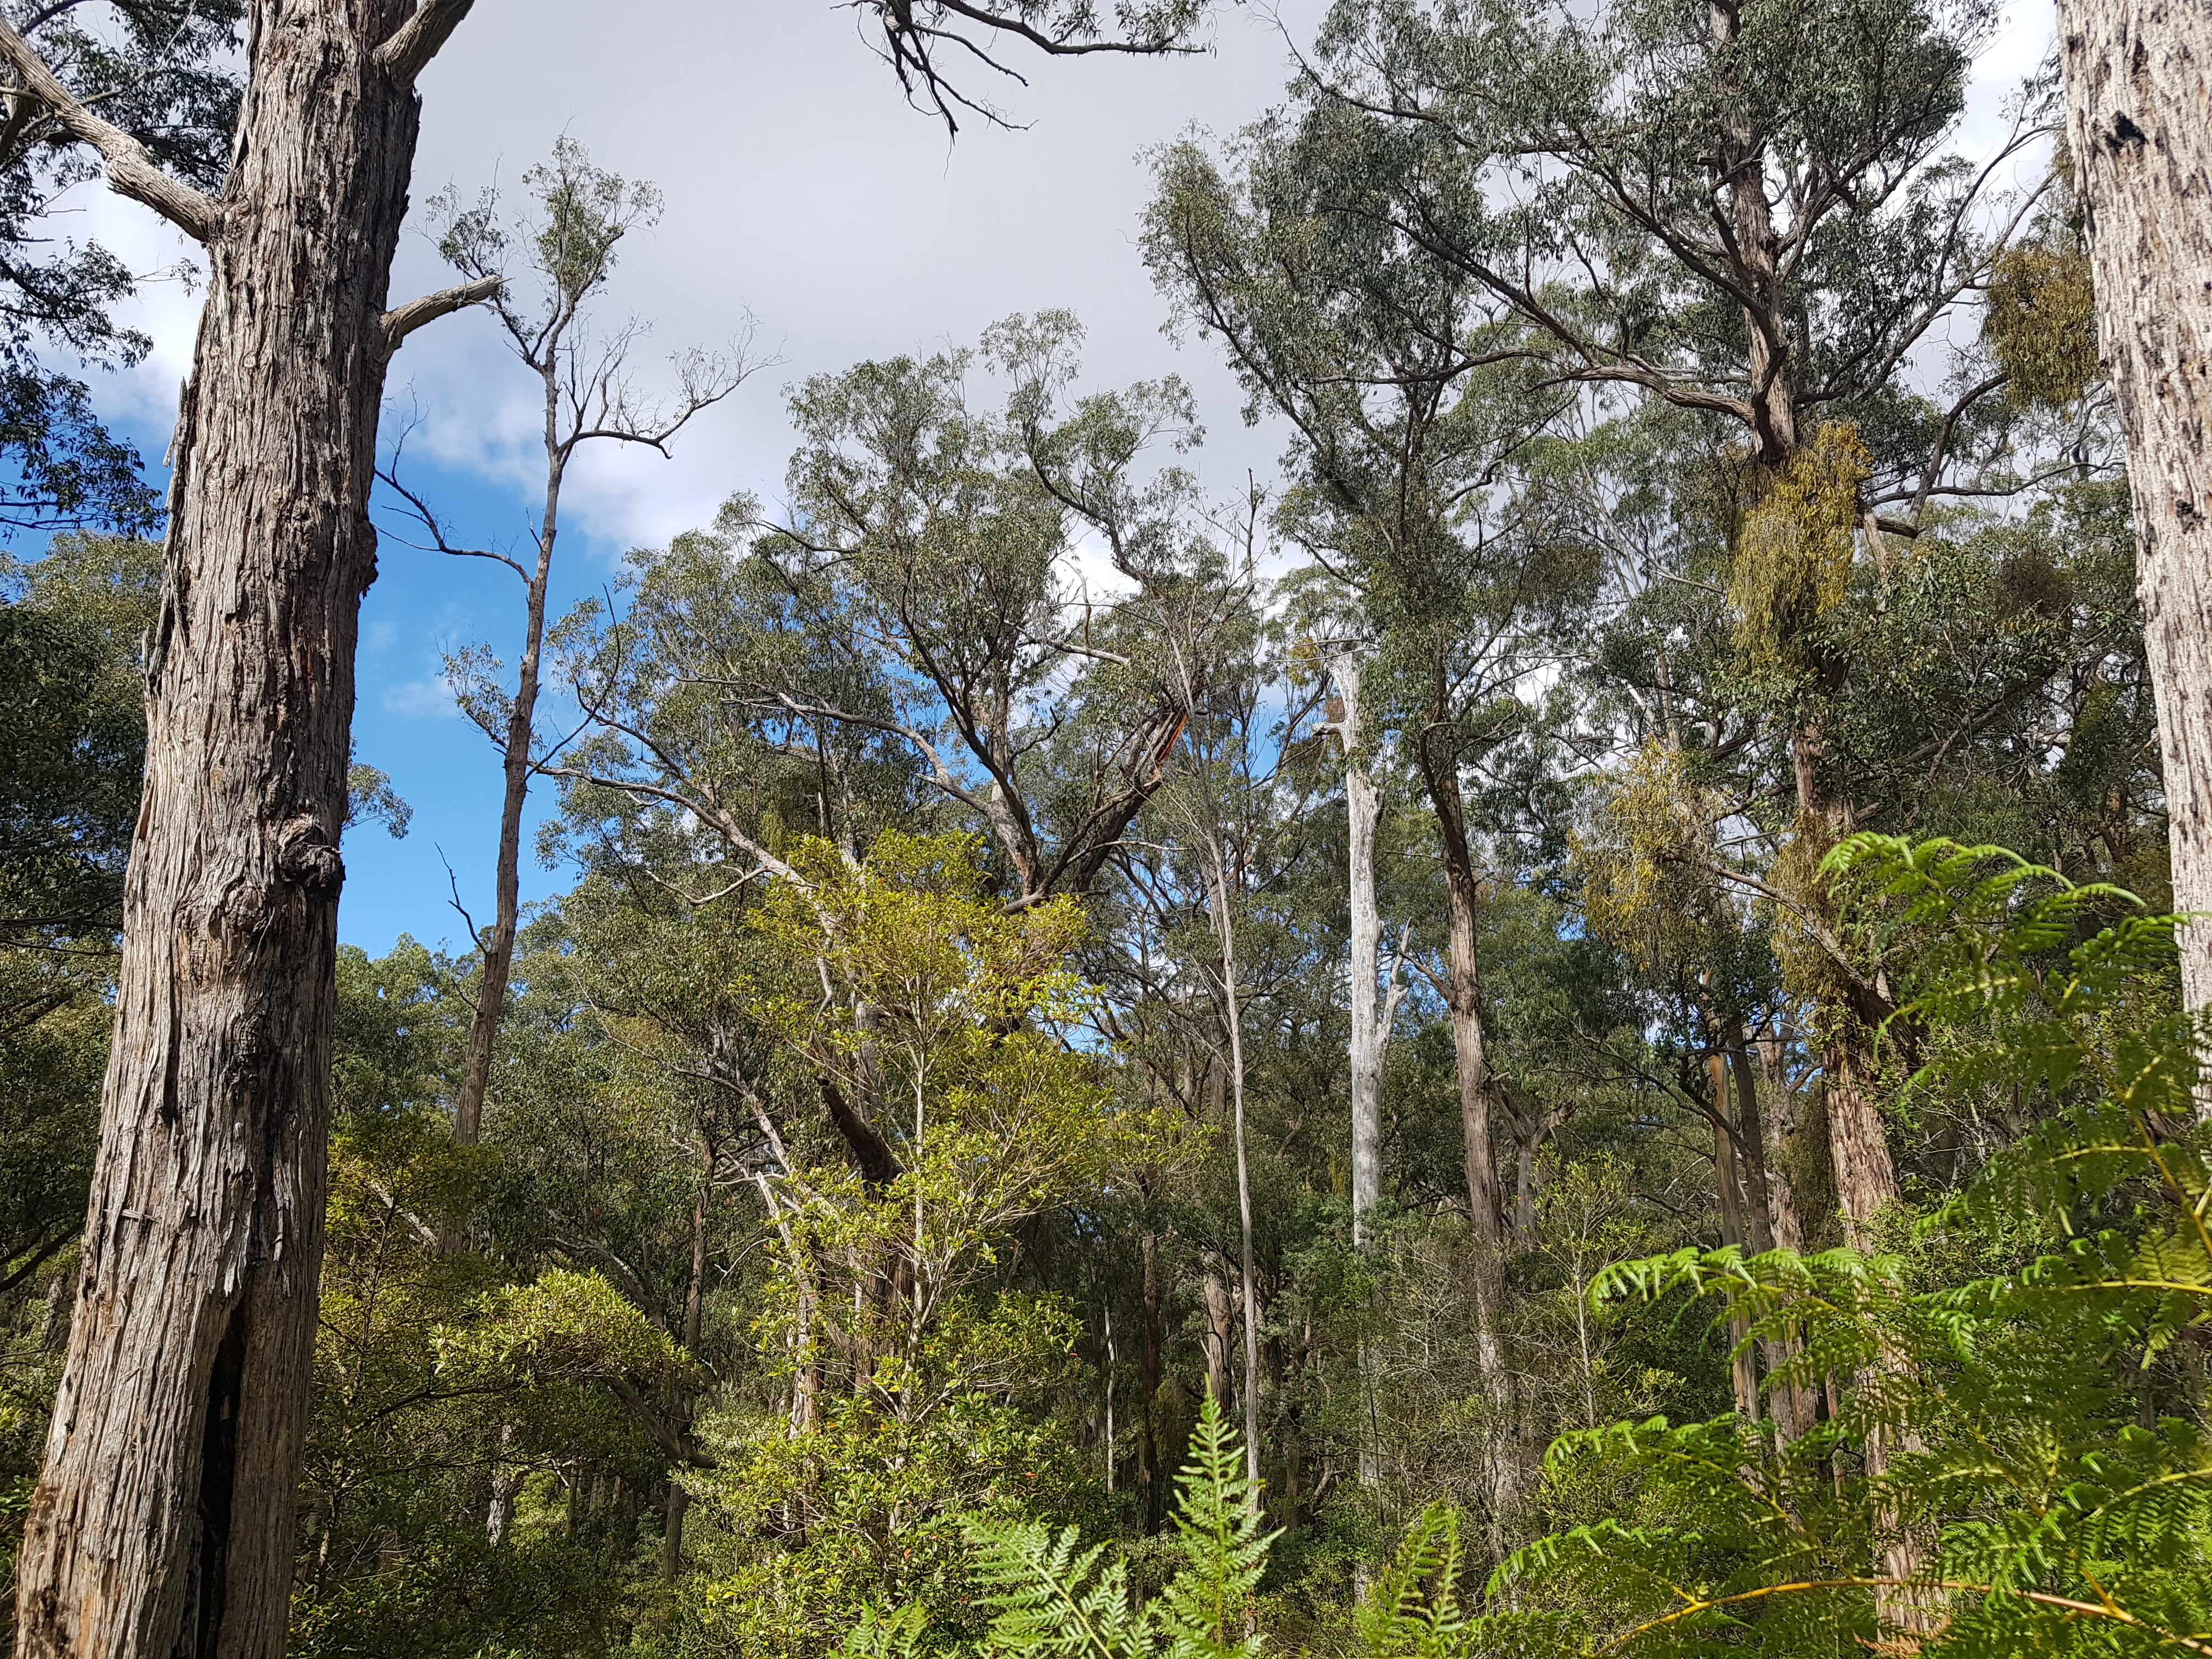 Forests in the Colquhoun still threatened by logging